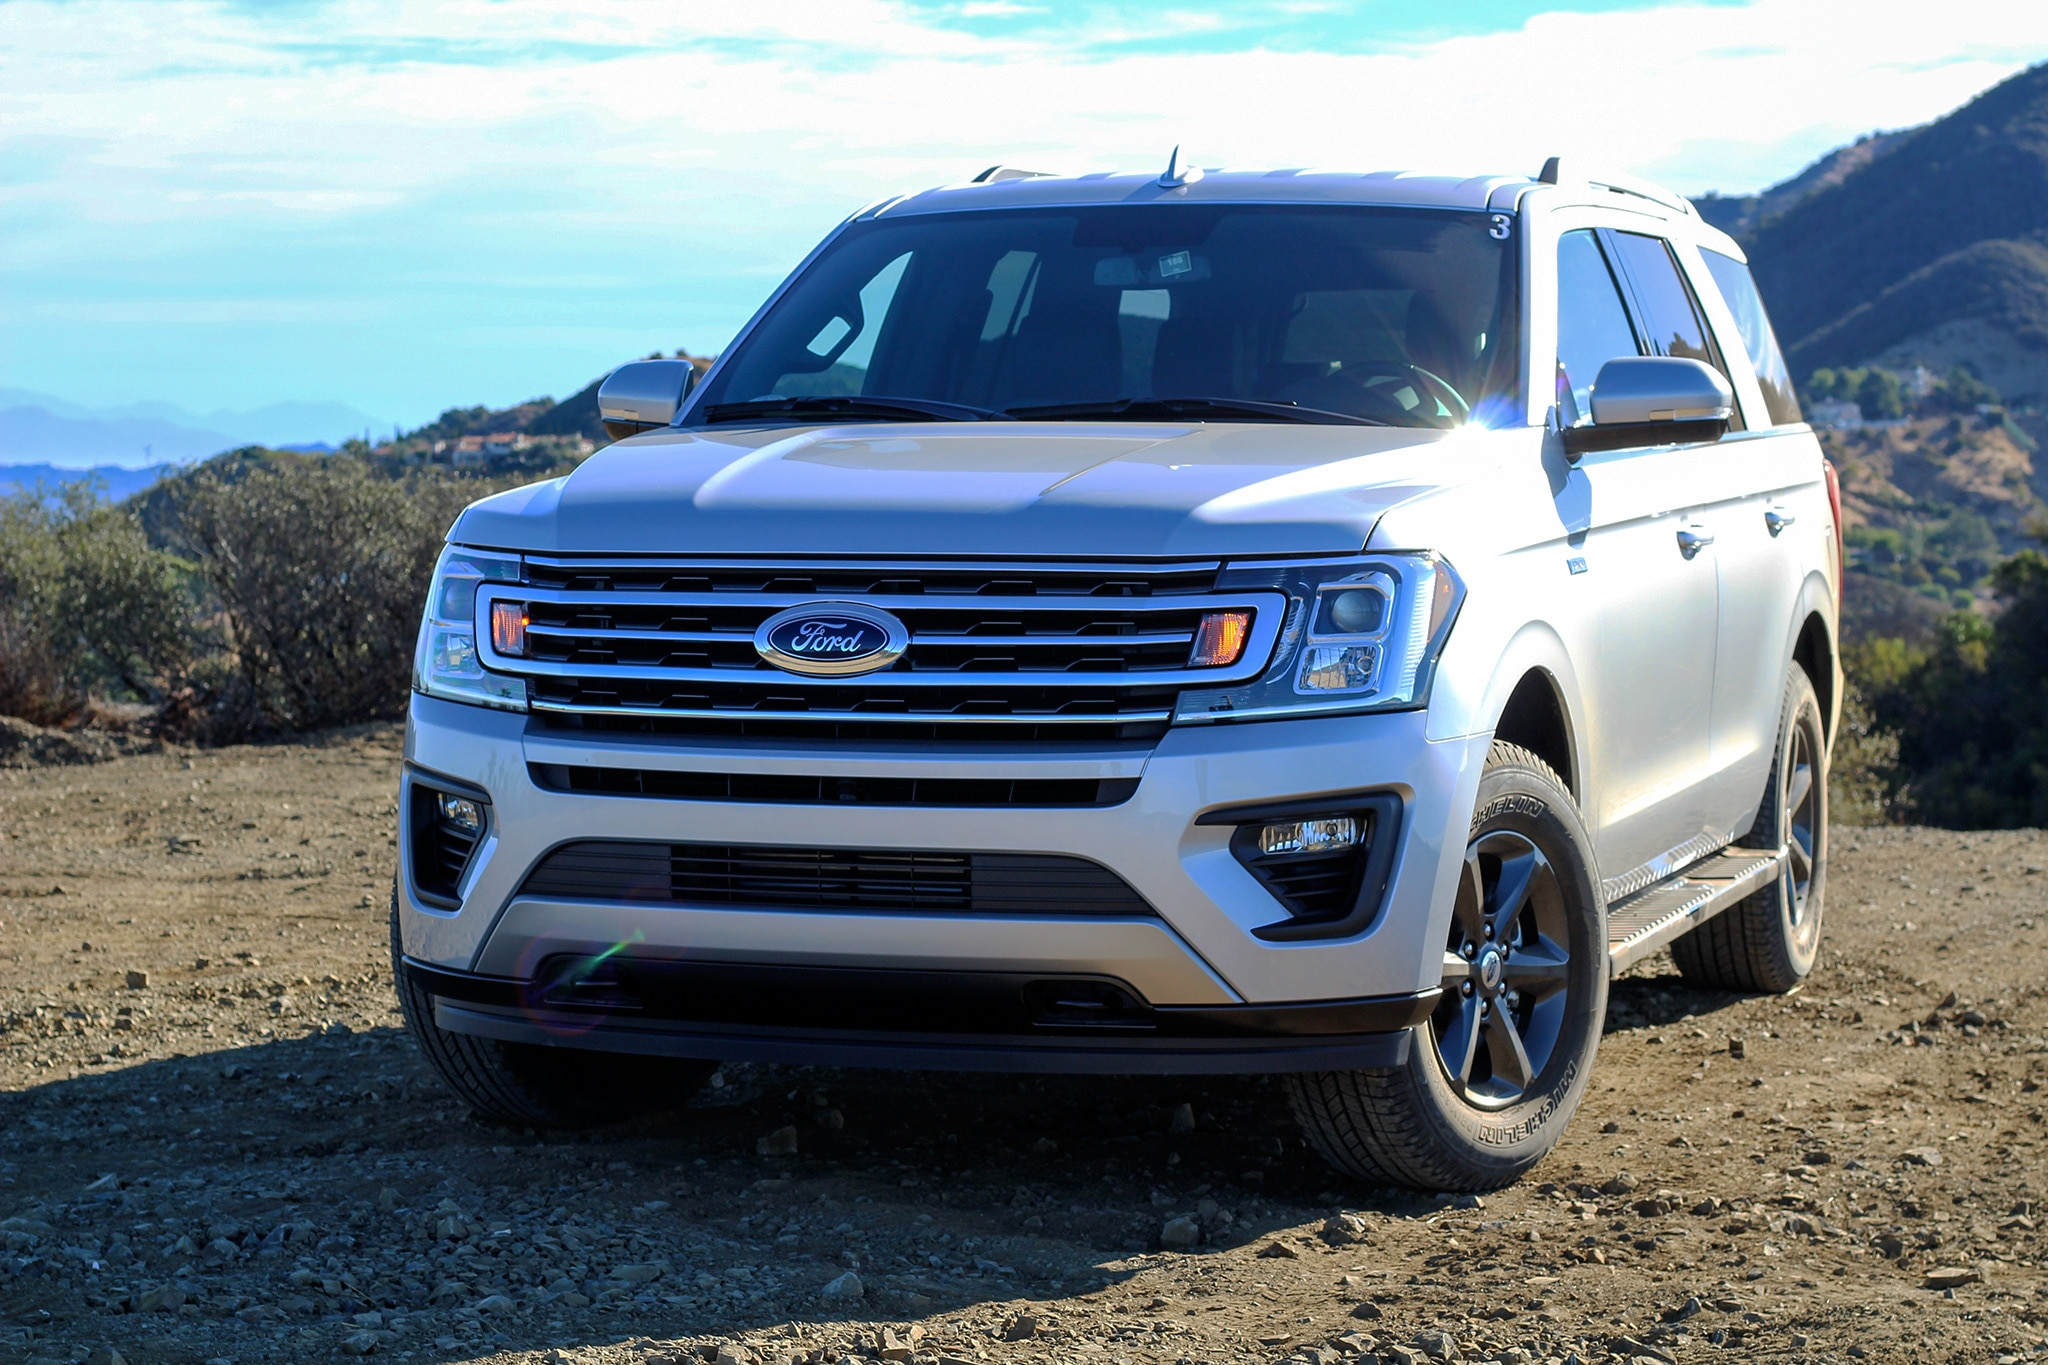 2018 Ford Expedition Review >> 2018 Ford Expedition First Drive | Automobile Magazine